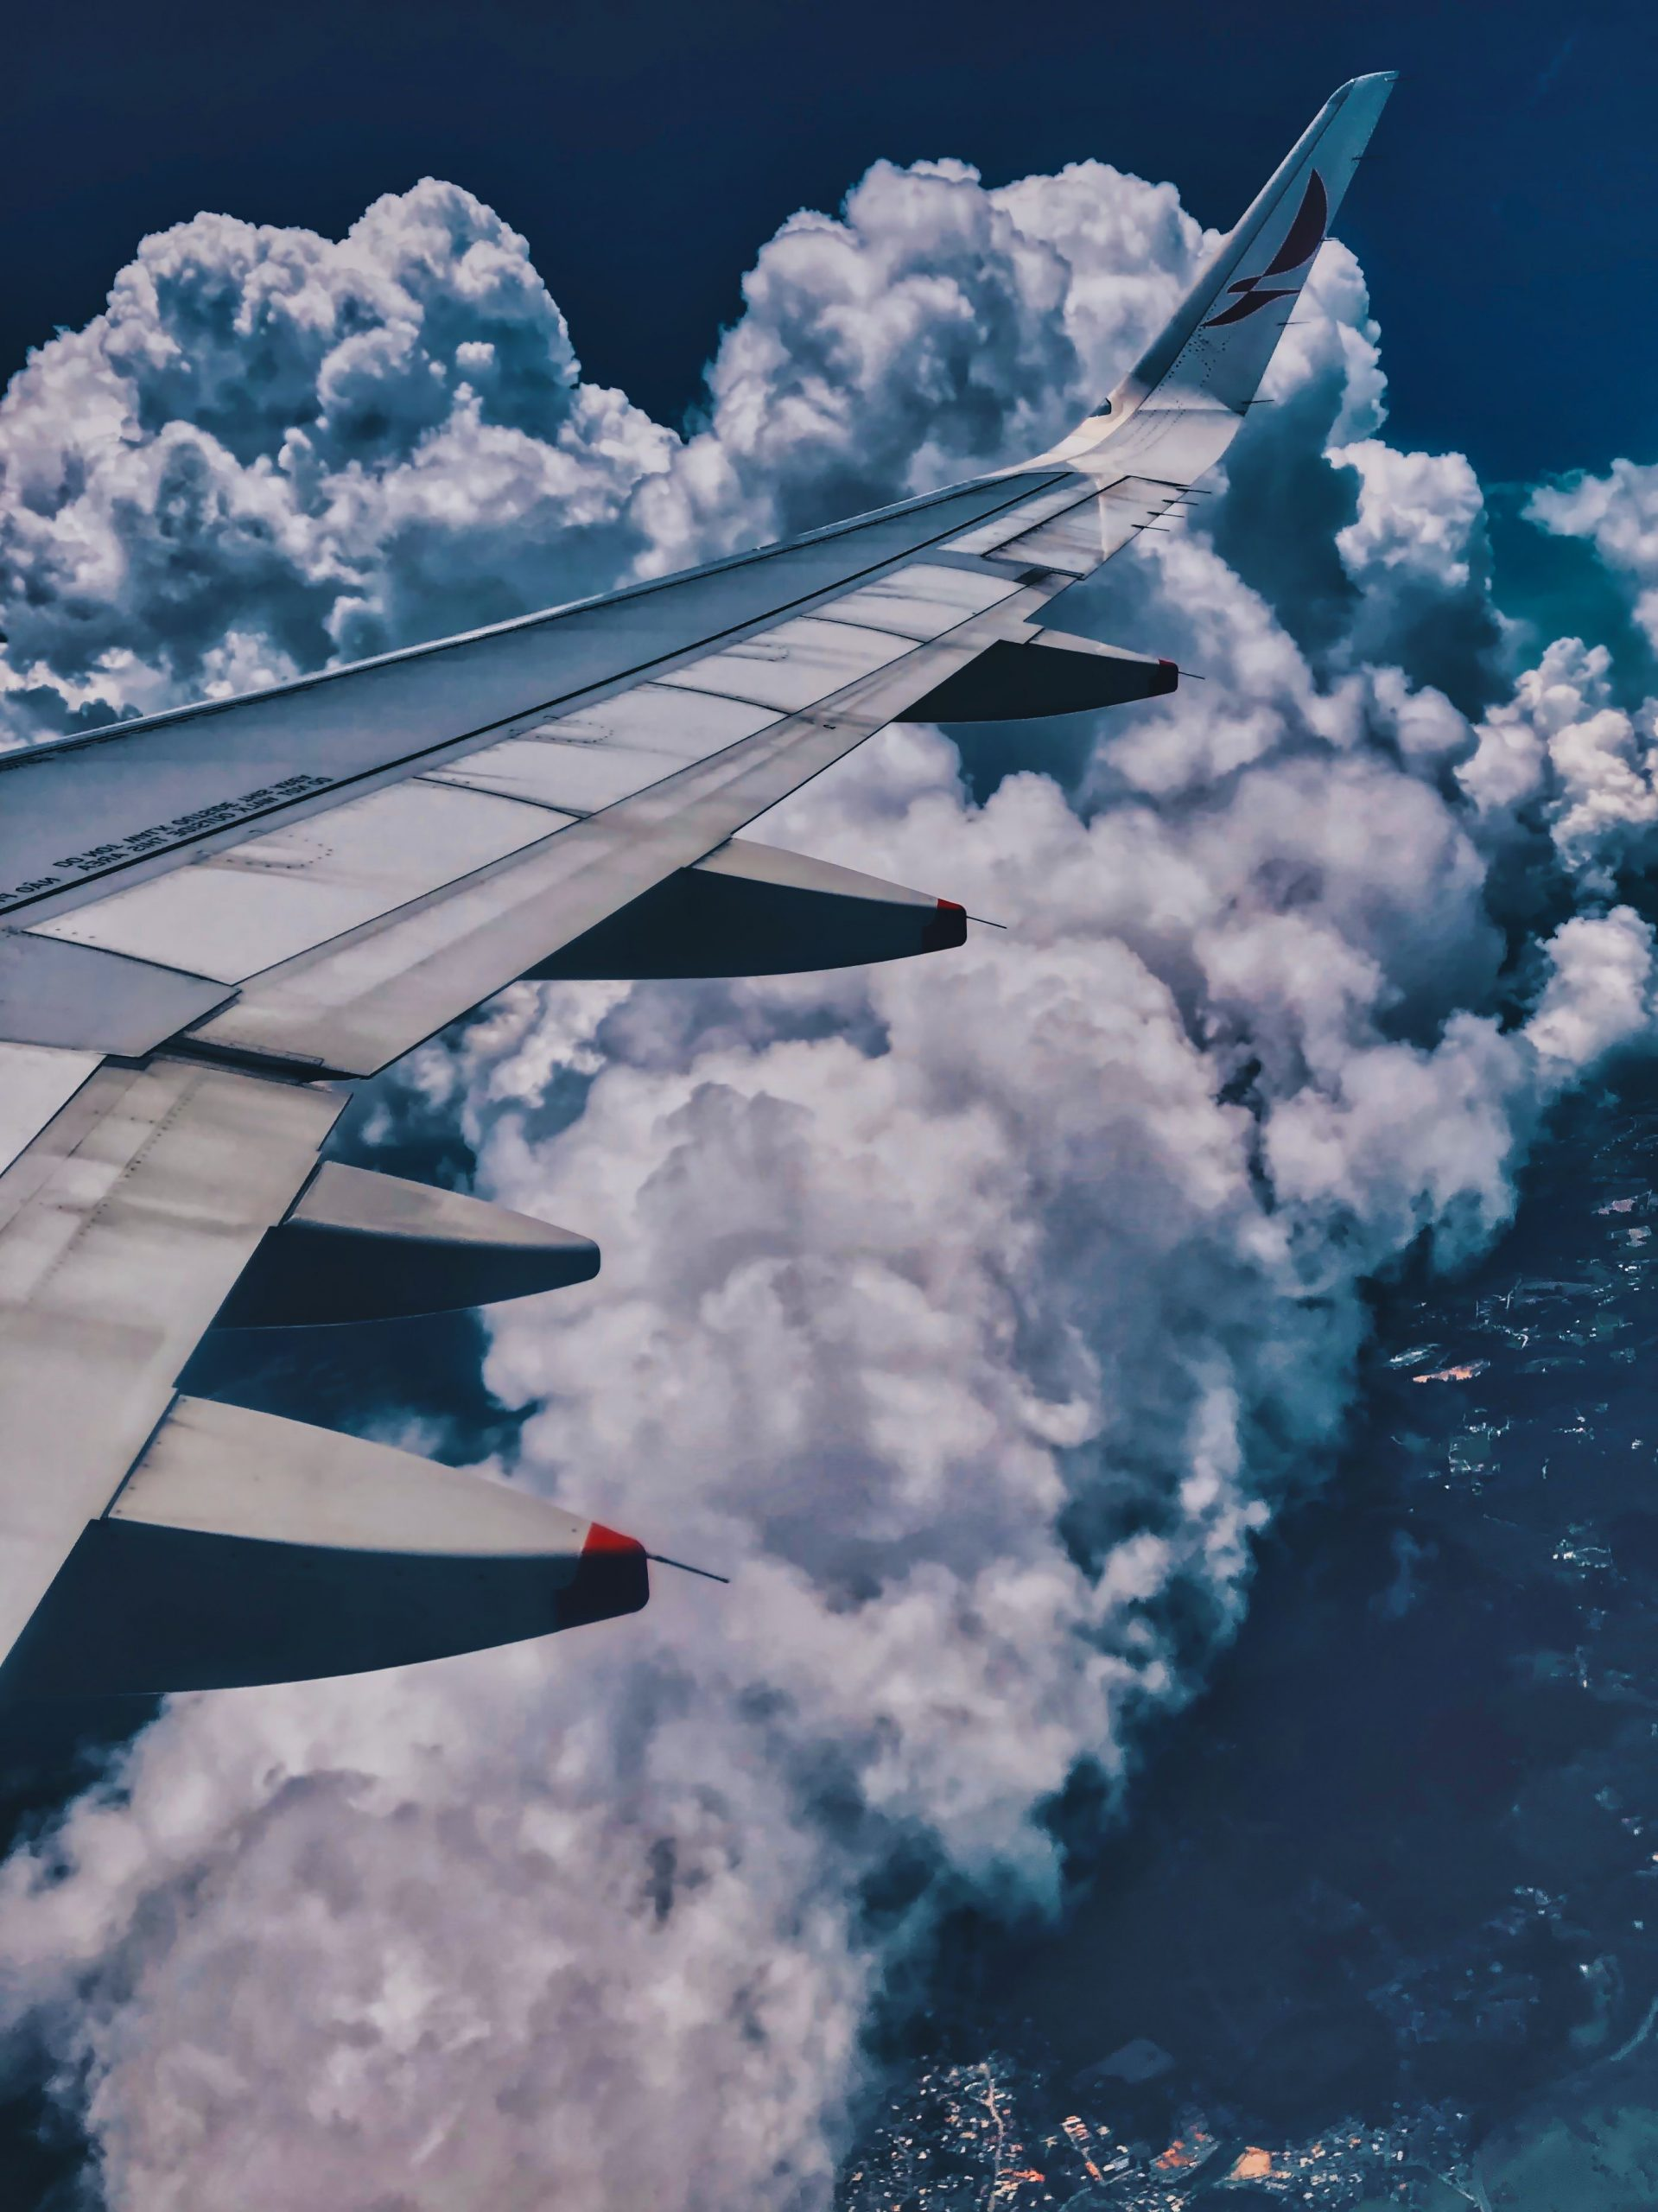 aircraft-wing-over-clouds-1815396